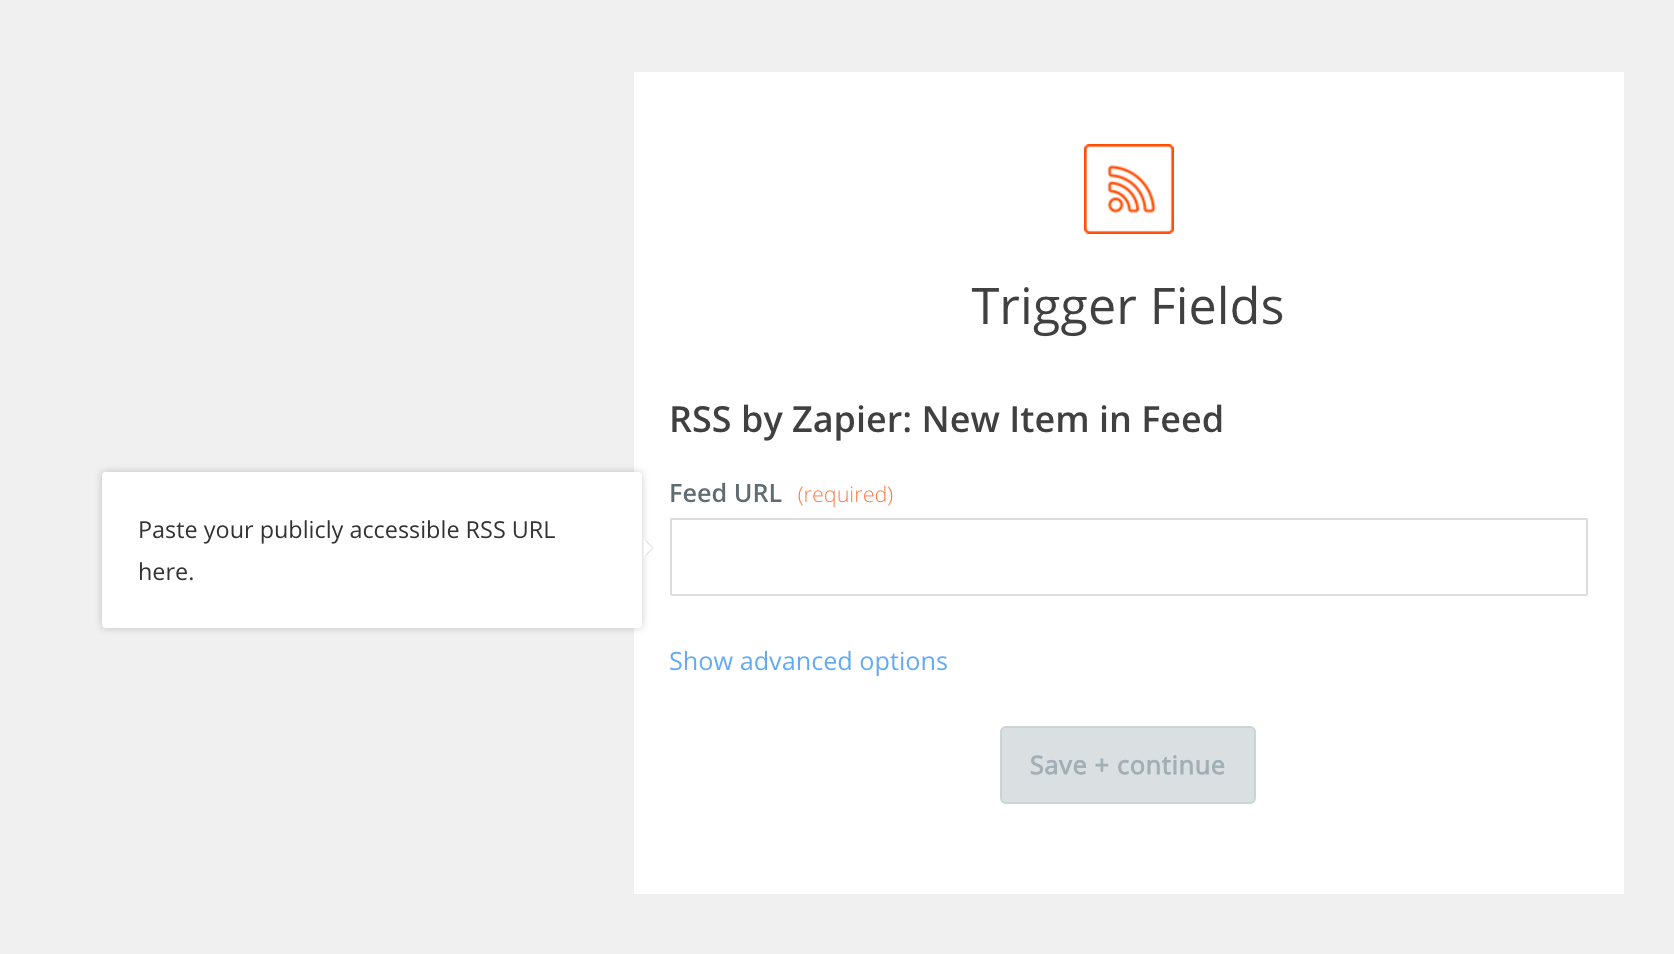 Specify your RSS URL